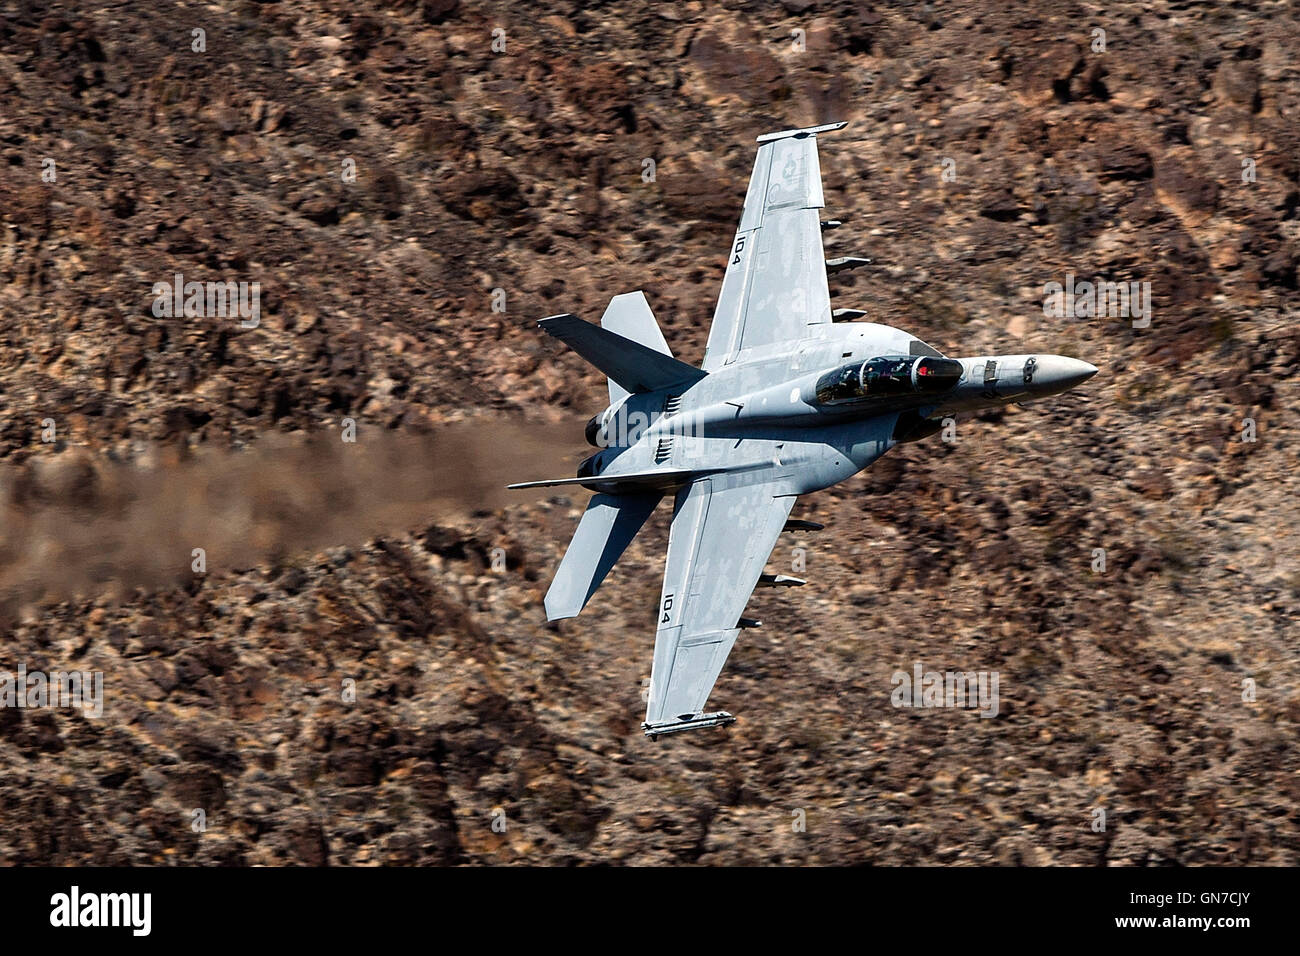 "US Navy Boeing F/A-18F Super Hornet NH-104 (SN 166877) from VFA-154 the ""Black Knights"" flies through the Jedi Transition, R-2508 complex, Star Wars Canyon / Rainbow Canyon, Death Valley National Park, California, United States of America. Stock Photo"